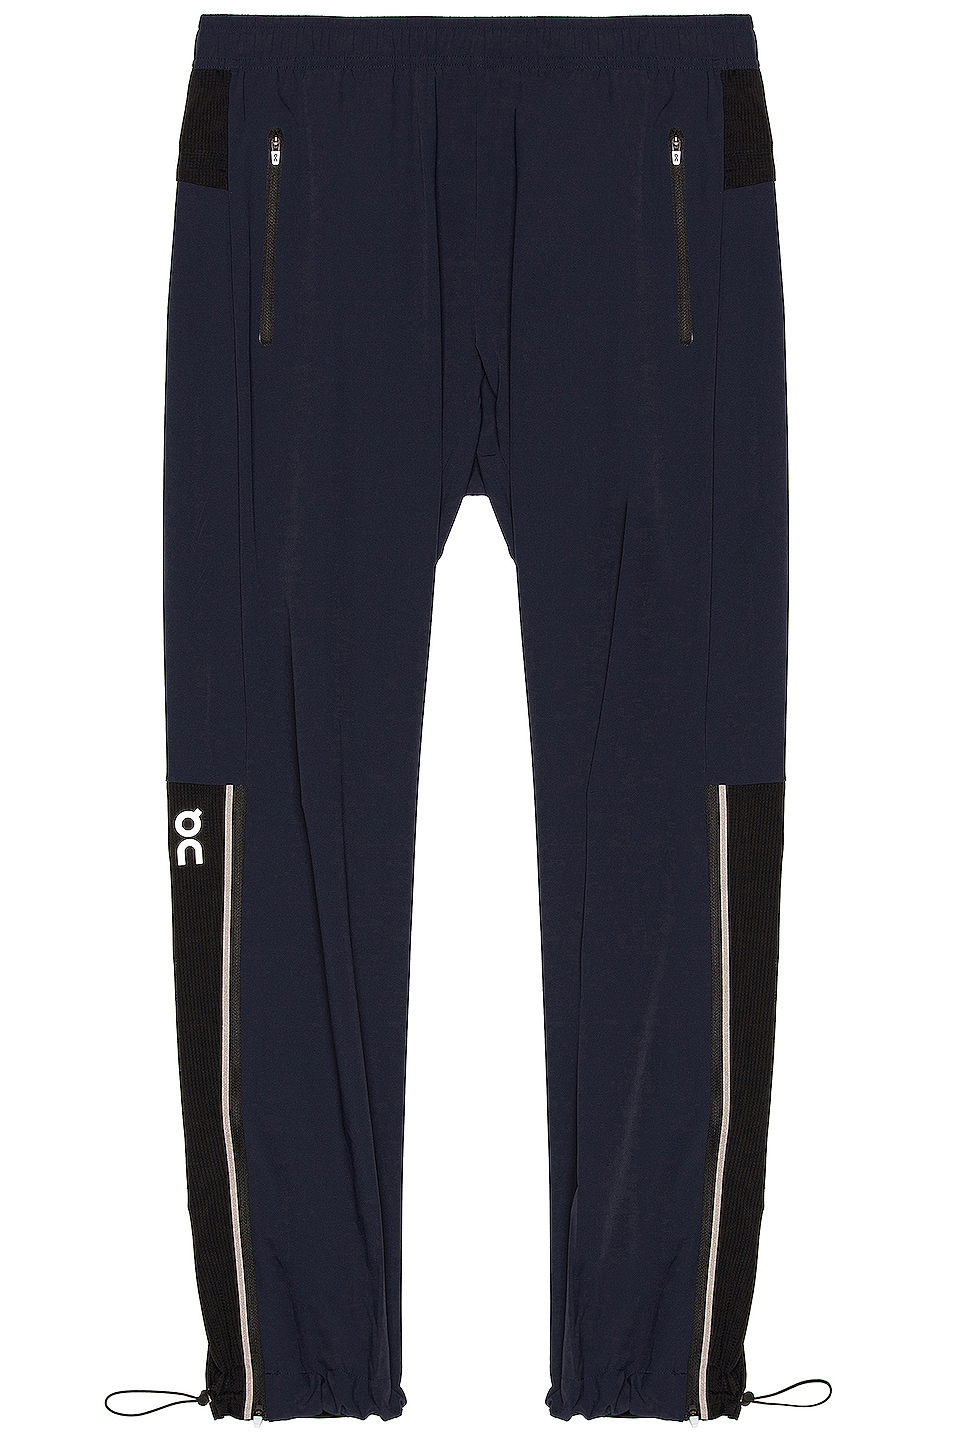 Image 1 of On Track Pants in Navy & Black